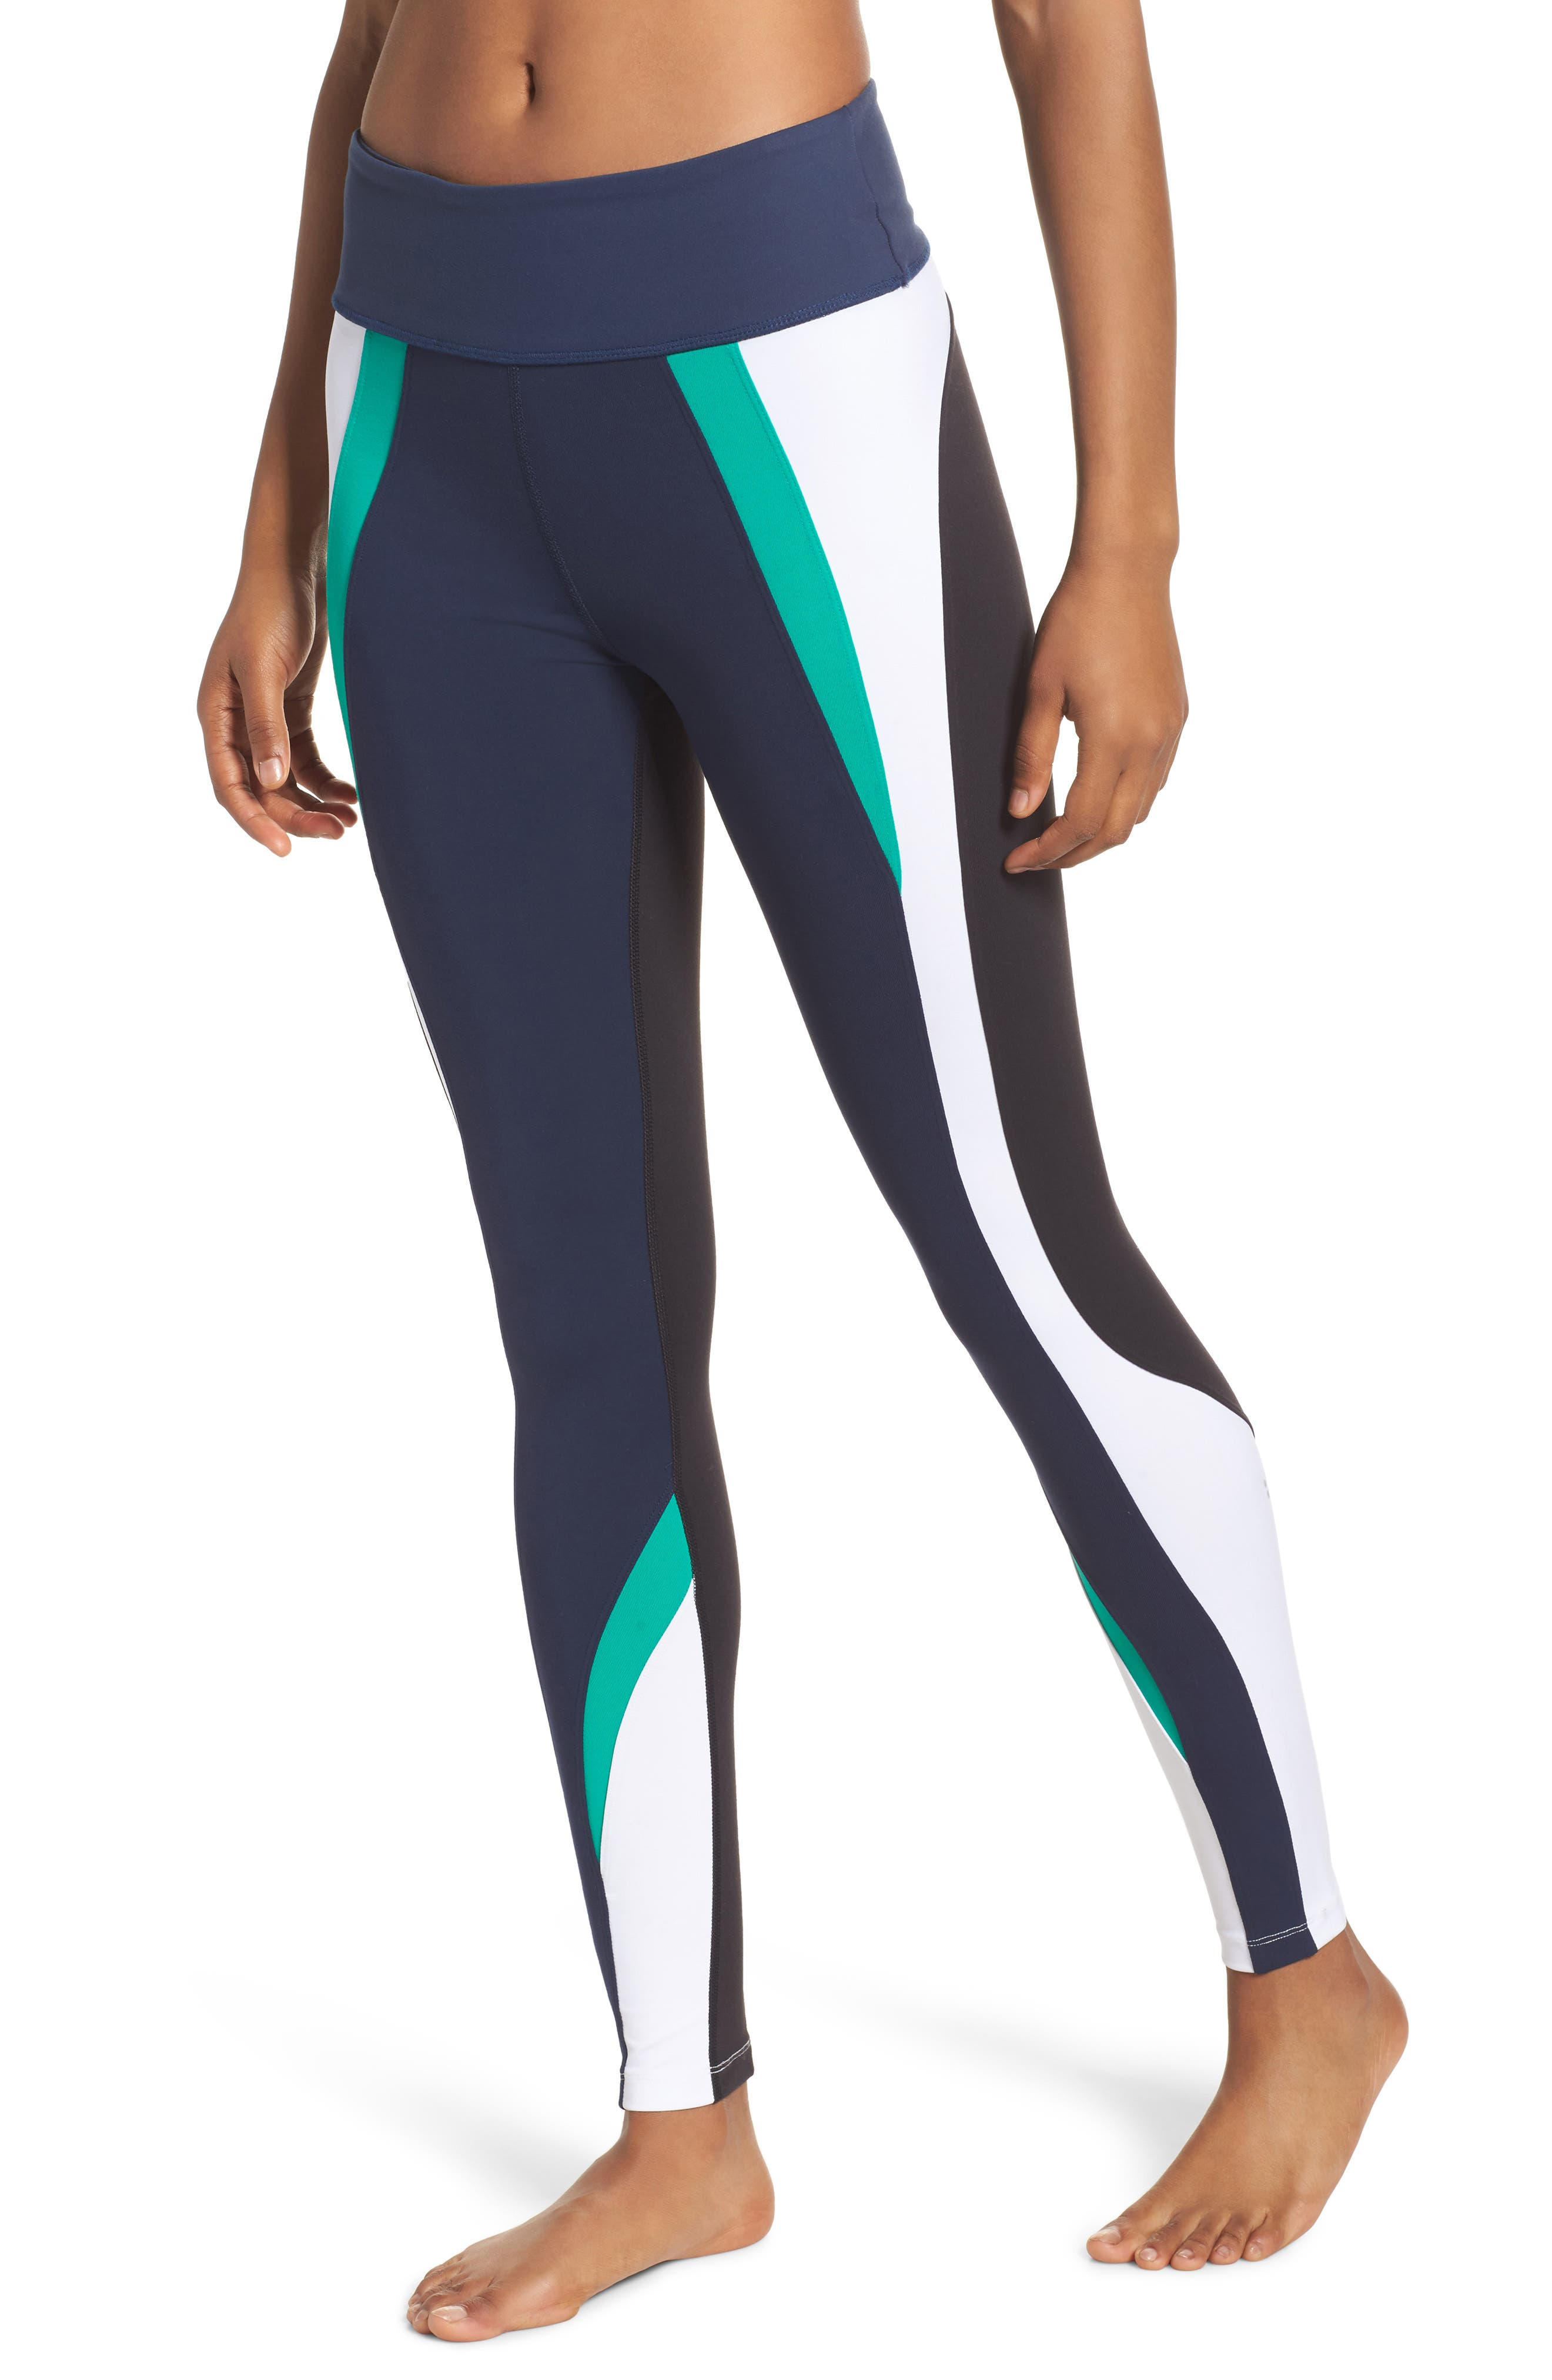 Force Ankle Tights,                             Main thumbnail 1, color,                             Navy/ Kelly/ White/ Black